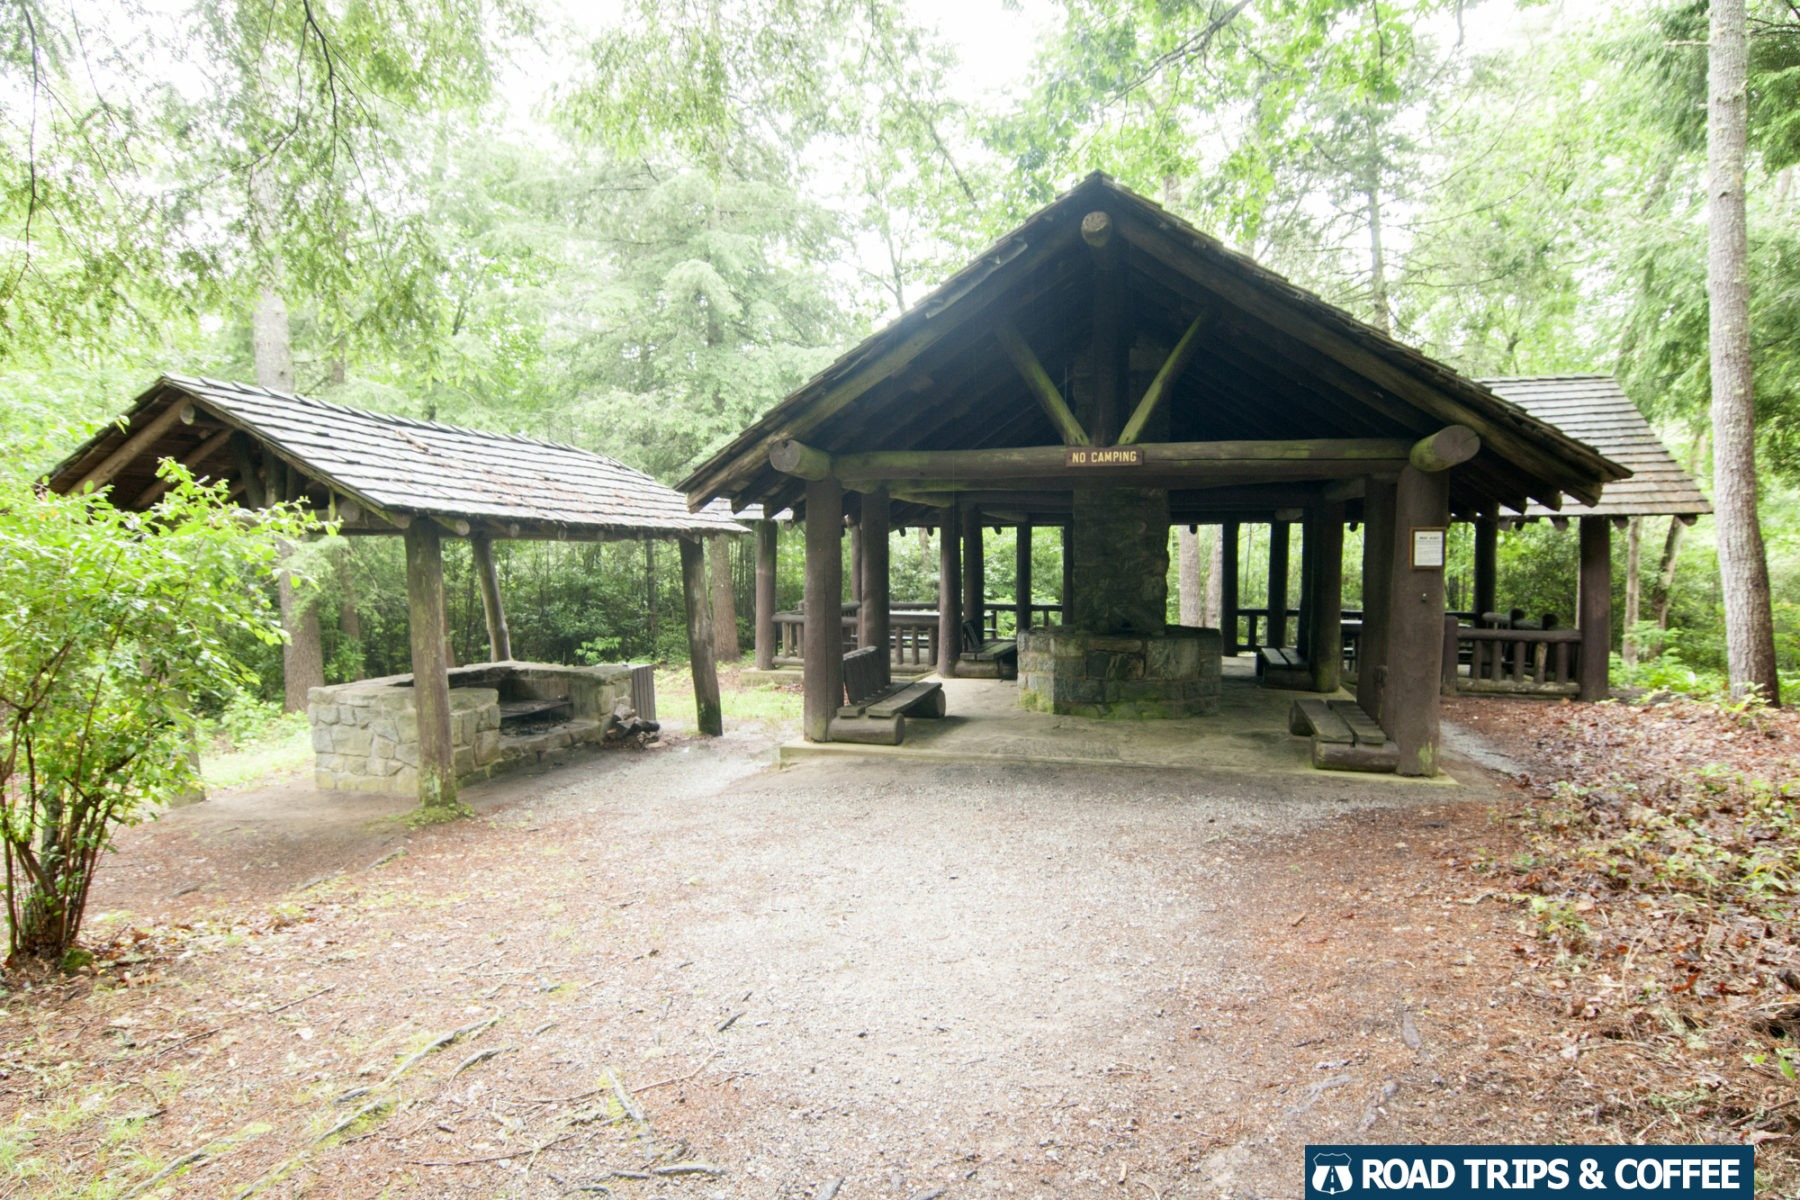 Large covered shelters surrounded by a dense forest on a rainy day at Cliffside Lake Recreation Area in Highlands, North Carolina